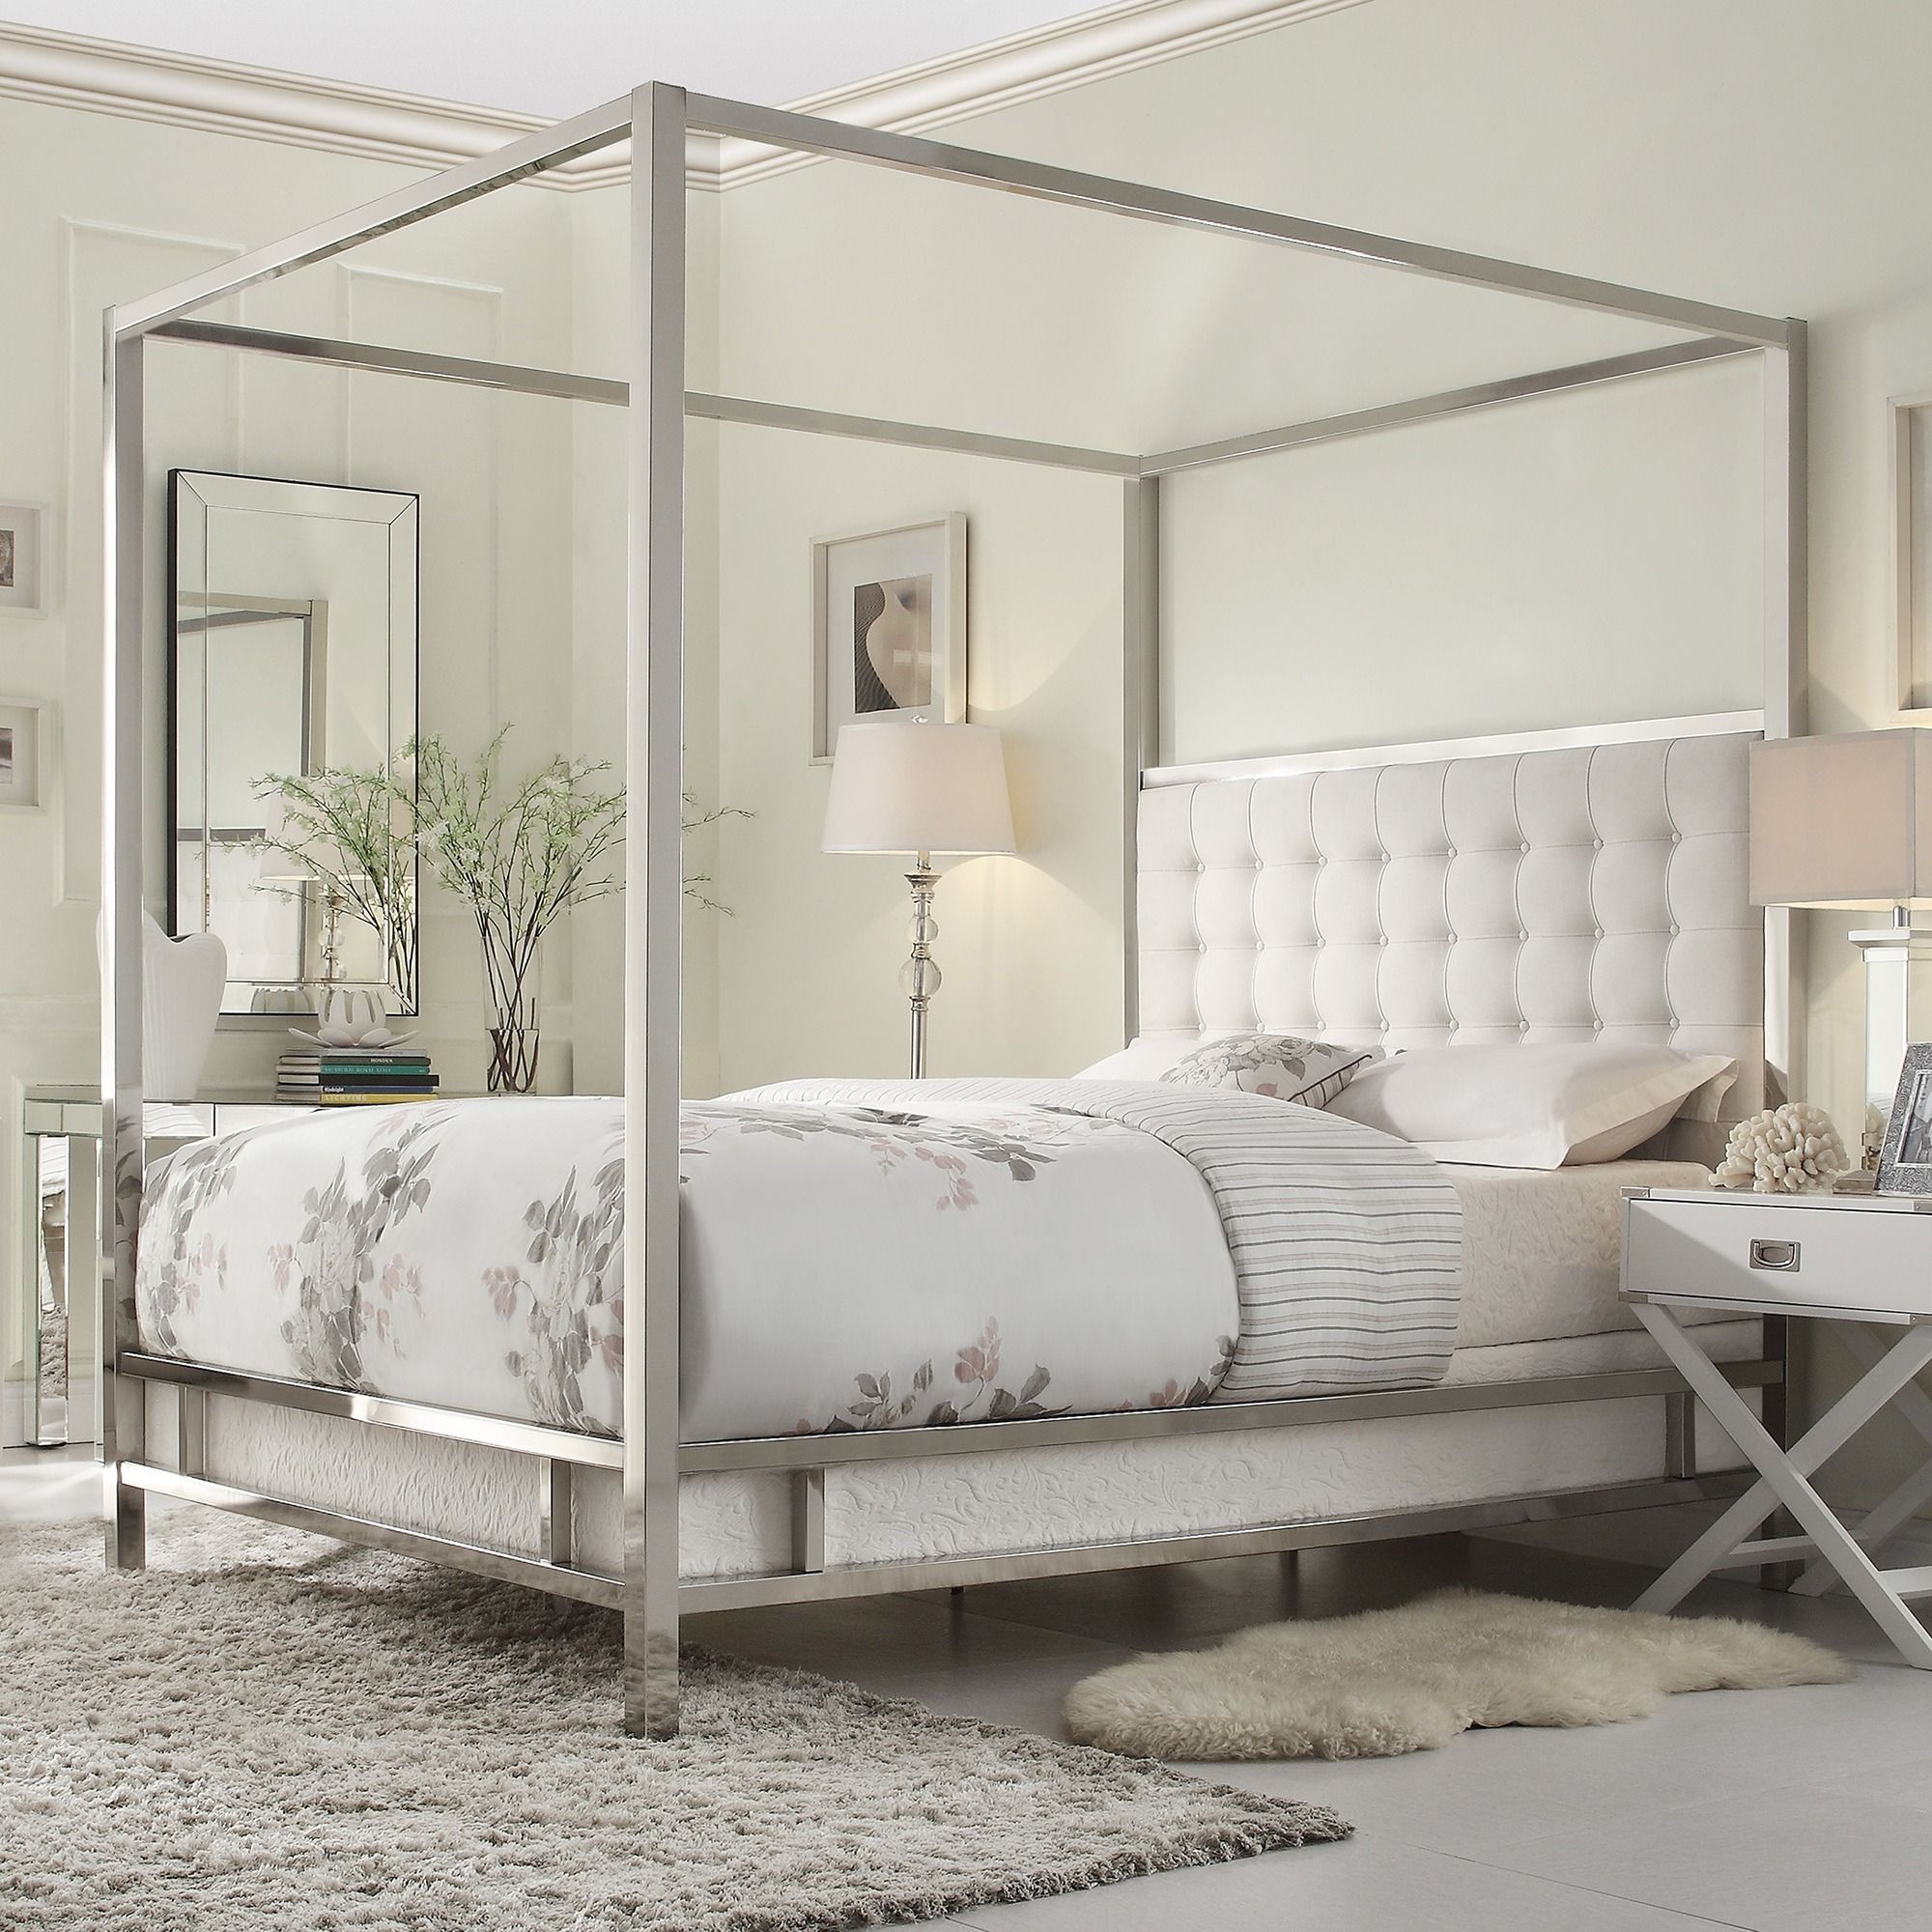 the solivita bed is simplicity but meticulously detailed to make an